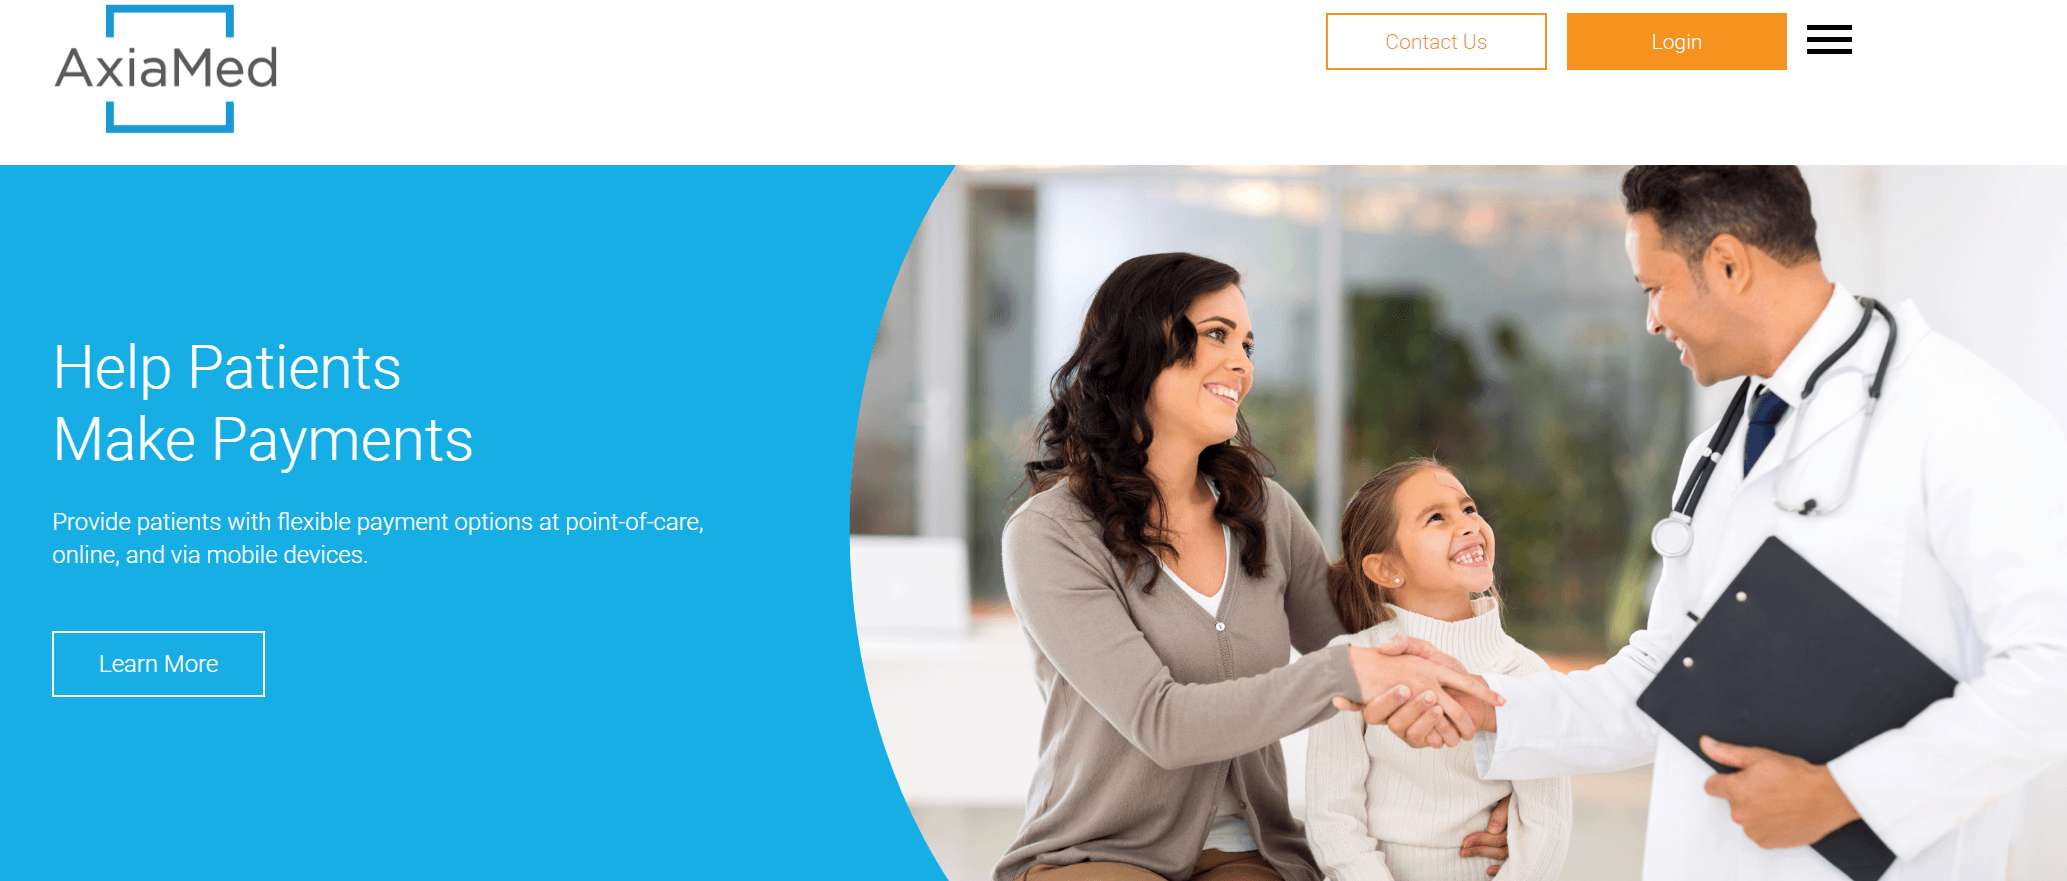 Revenue Cycle Startup AxiaMed Rasies $12.4M for Patient Payment Platform